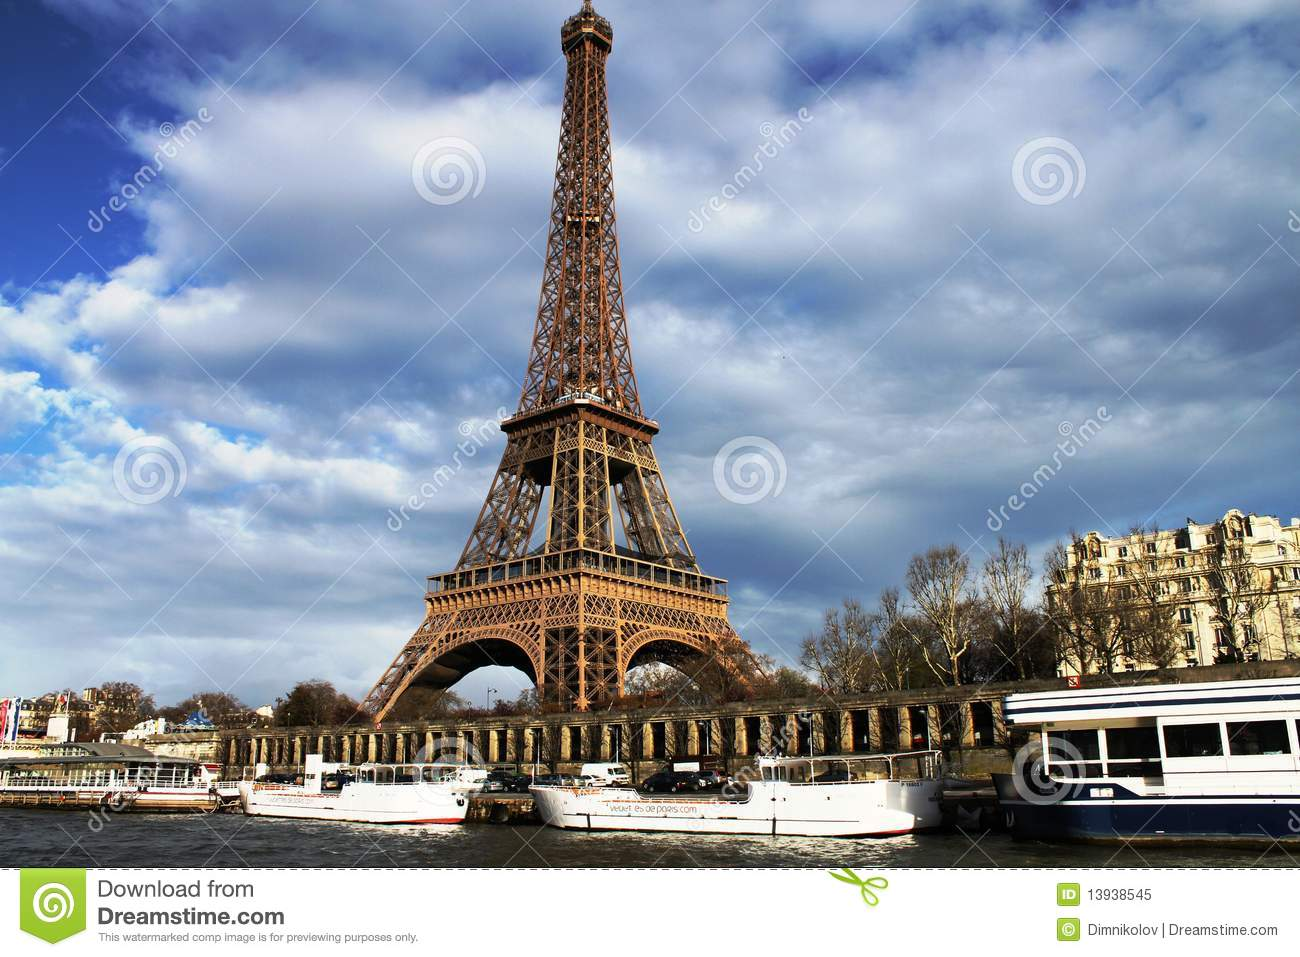 la tour eiffel the eiffel tower stock image image of tower tourist 13938545. Black Bedroom Furniture Sets. Home Design Ideas